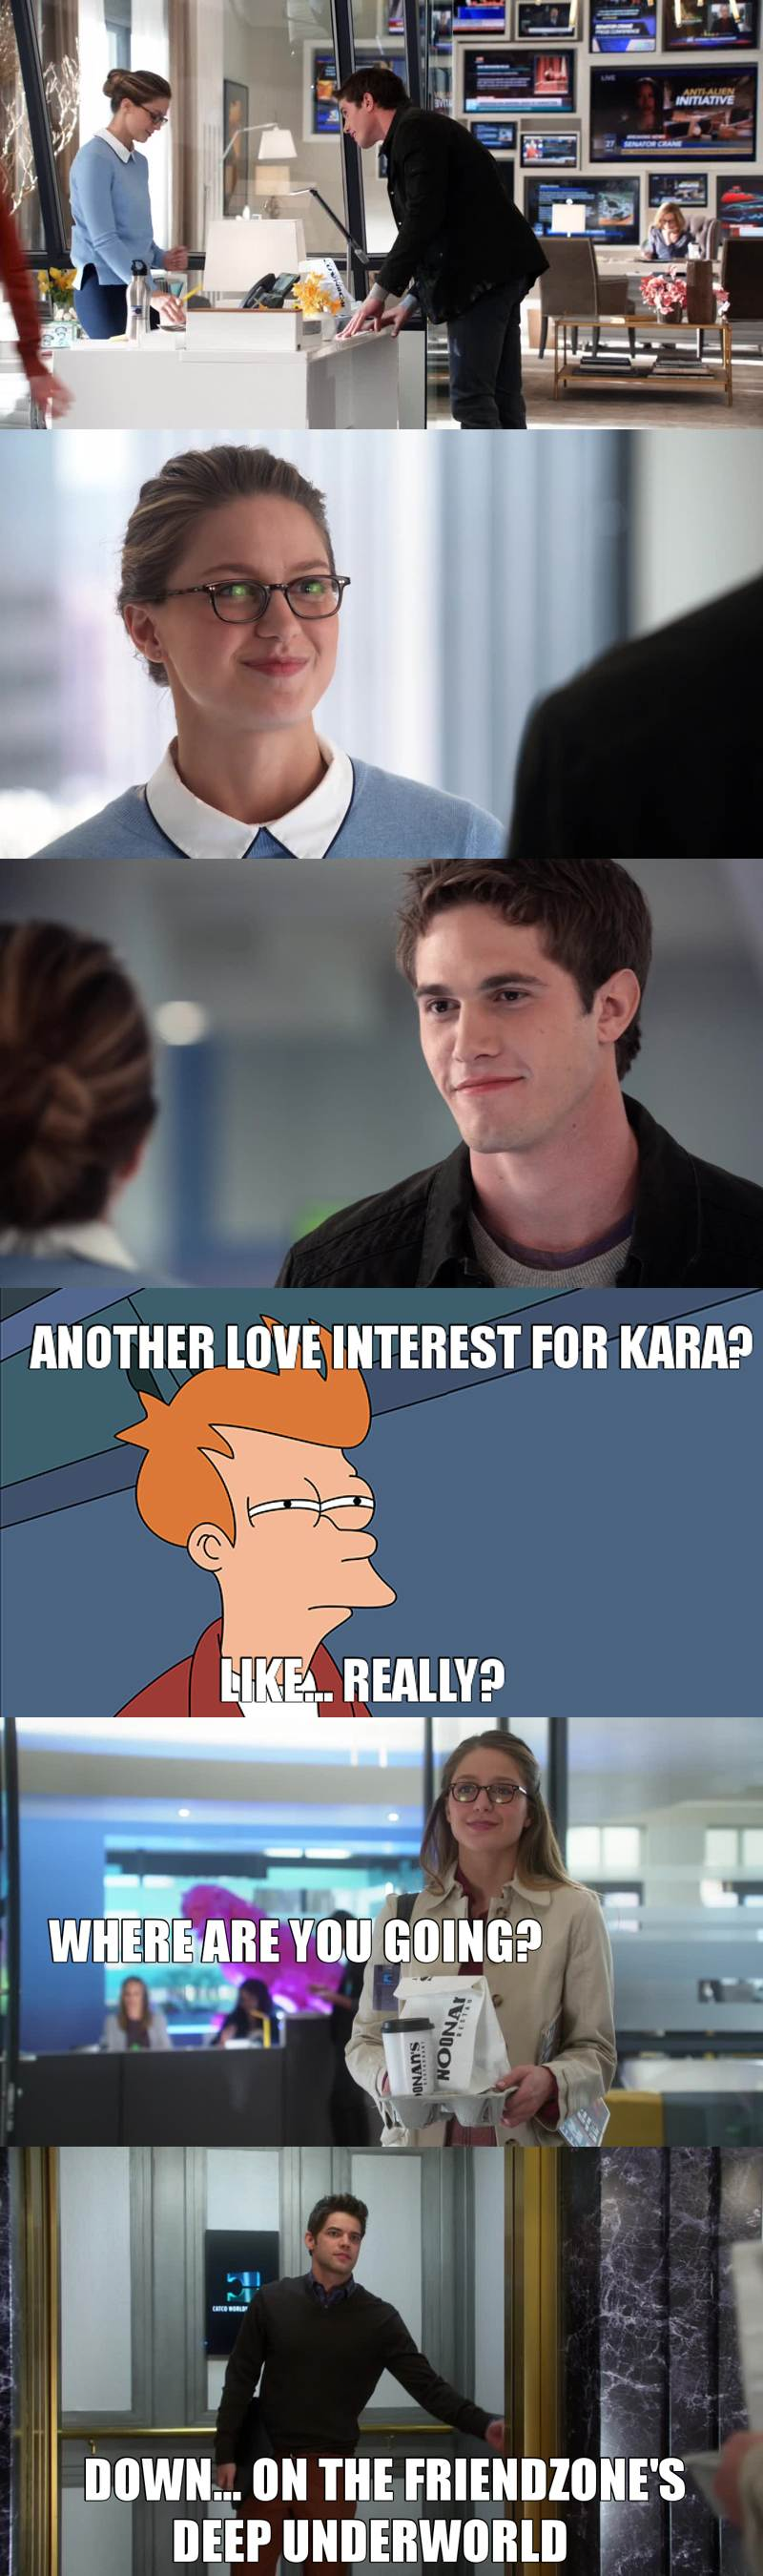 Isn't James and Winn enough relationship issues for her? Does the show really needs another guy as love interest for Kara?   One thing is for sure, little hobbit will be pissed!  James: check! Adam: check! Little Hobbit: meh...   The friend zone just got deeper!